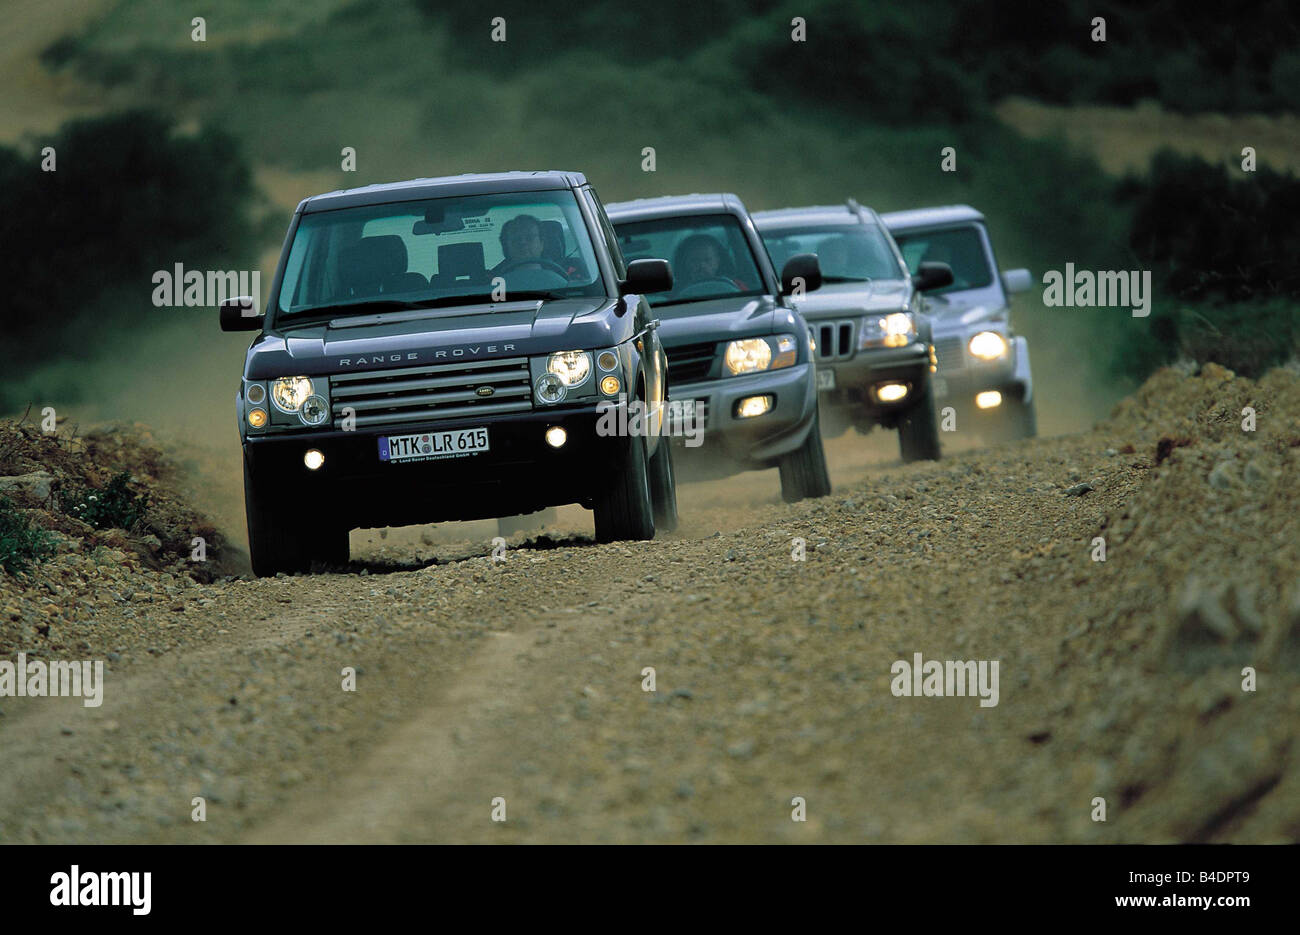 Car  Cross Country Vehicle  Group Picture  Land Rover